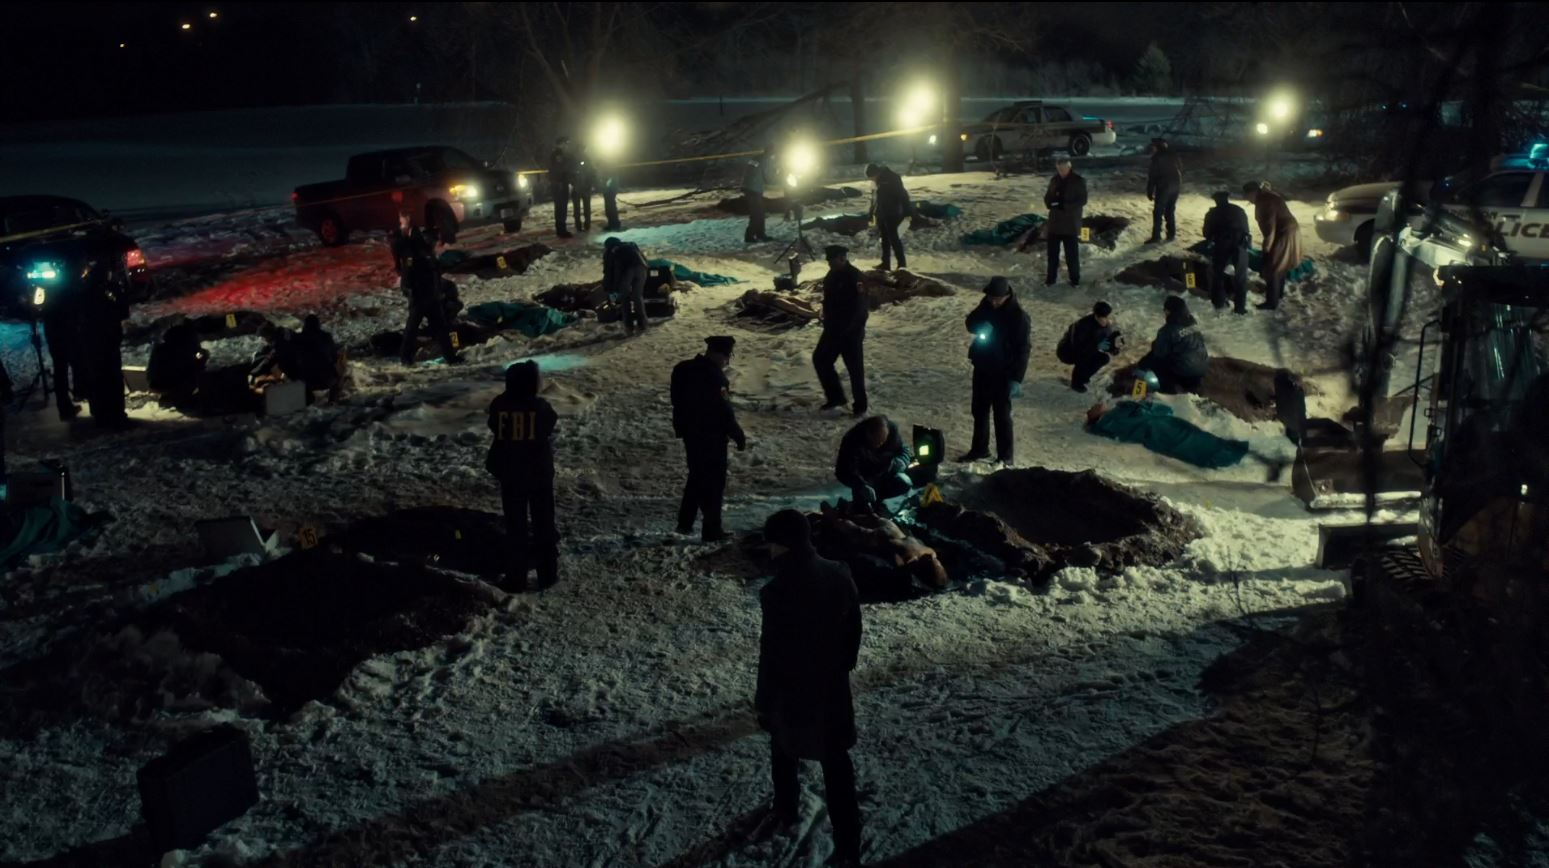 Hannibal Season 2 Episode 8 Su-zakana - The FBI finds more bodies